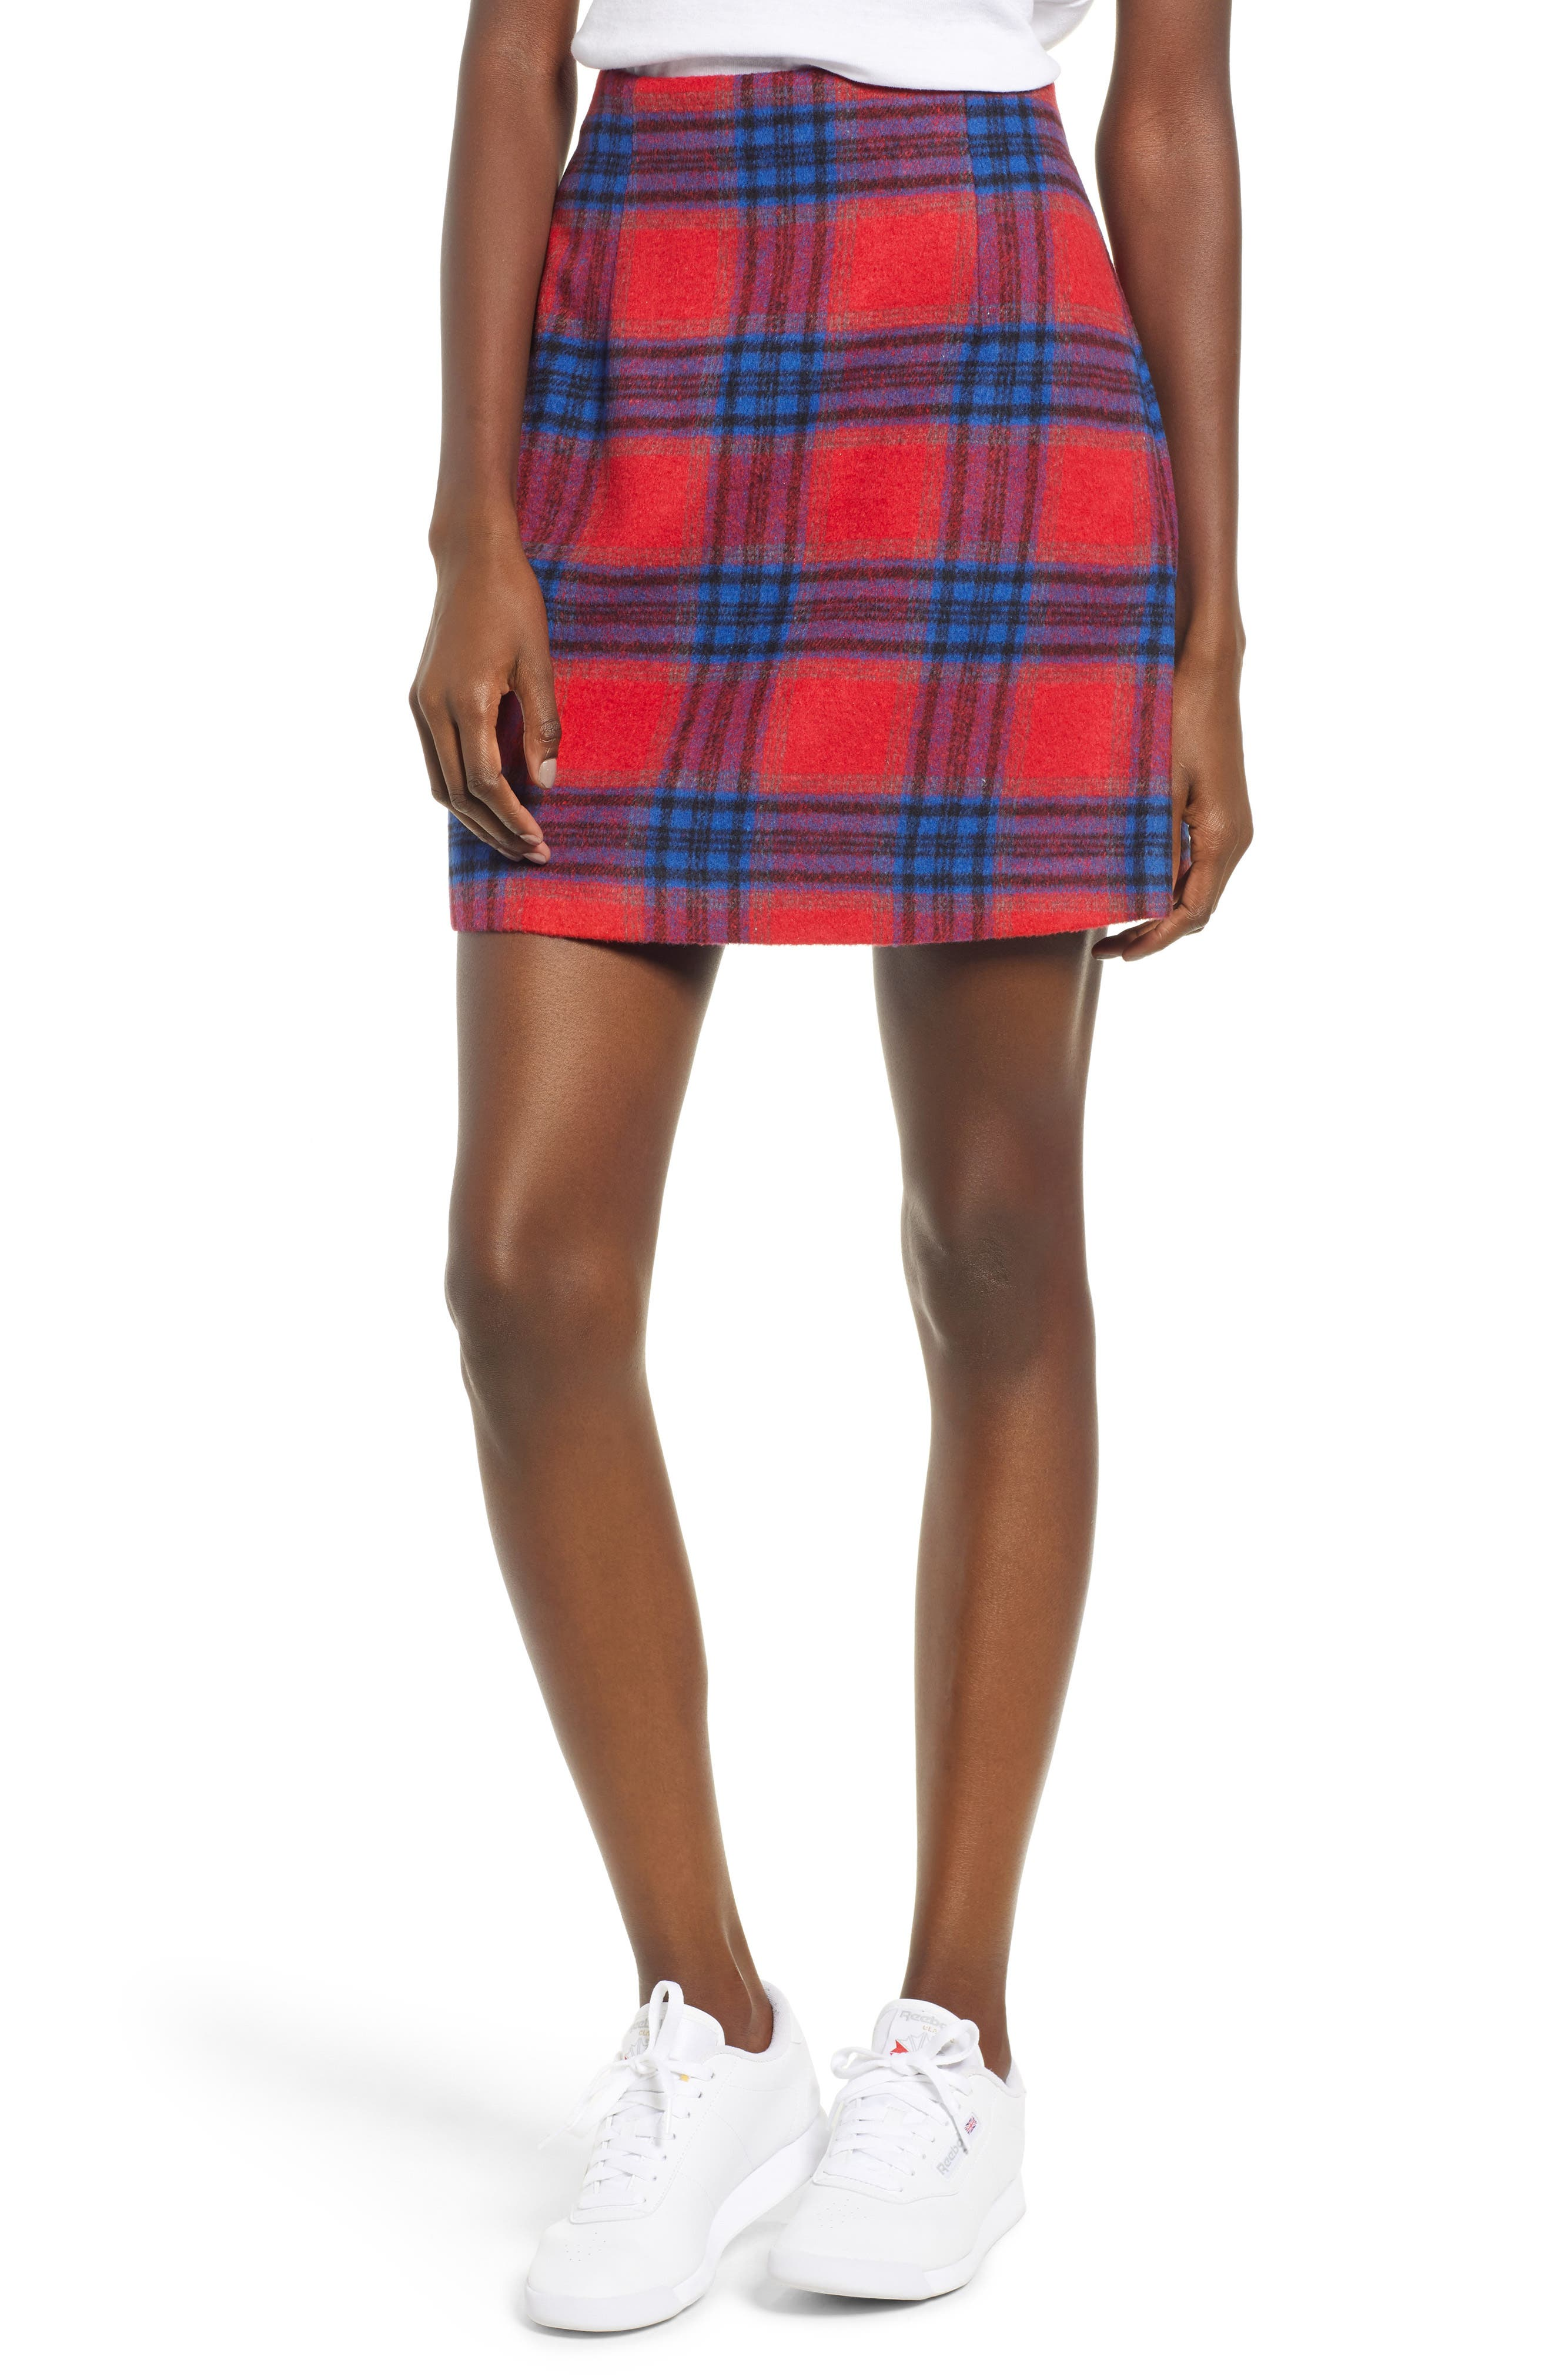 Red Plaid Skirt